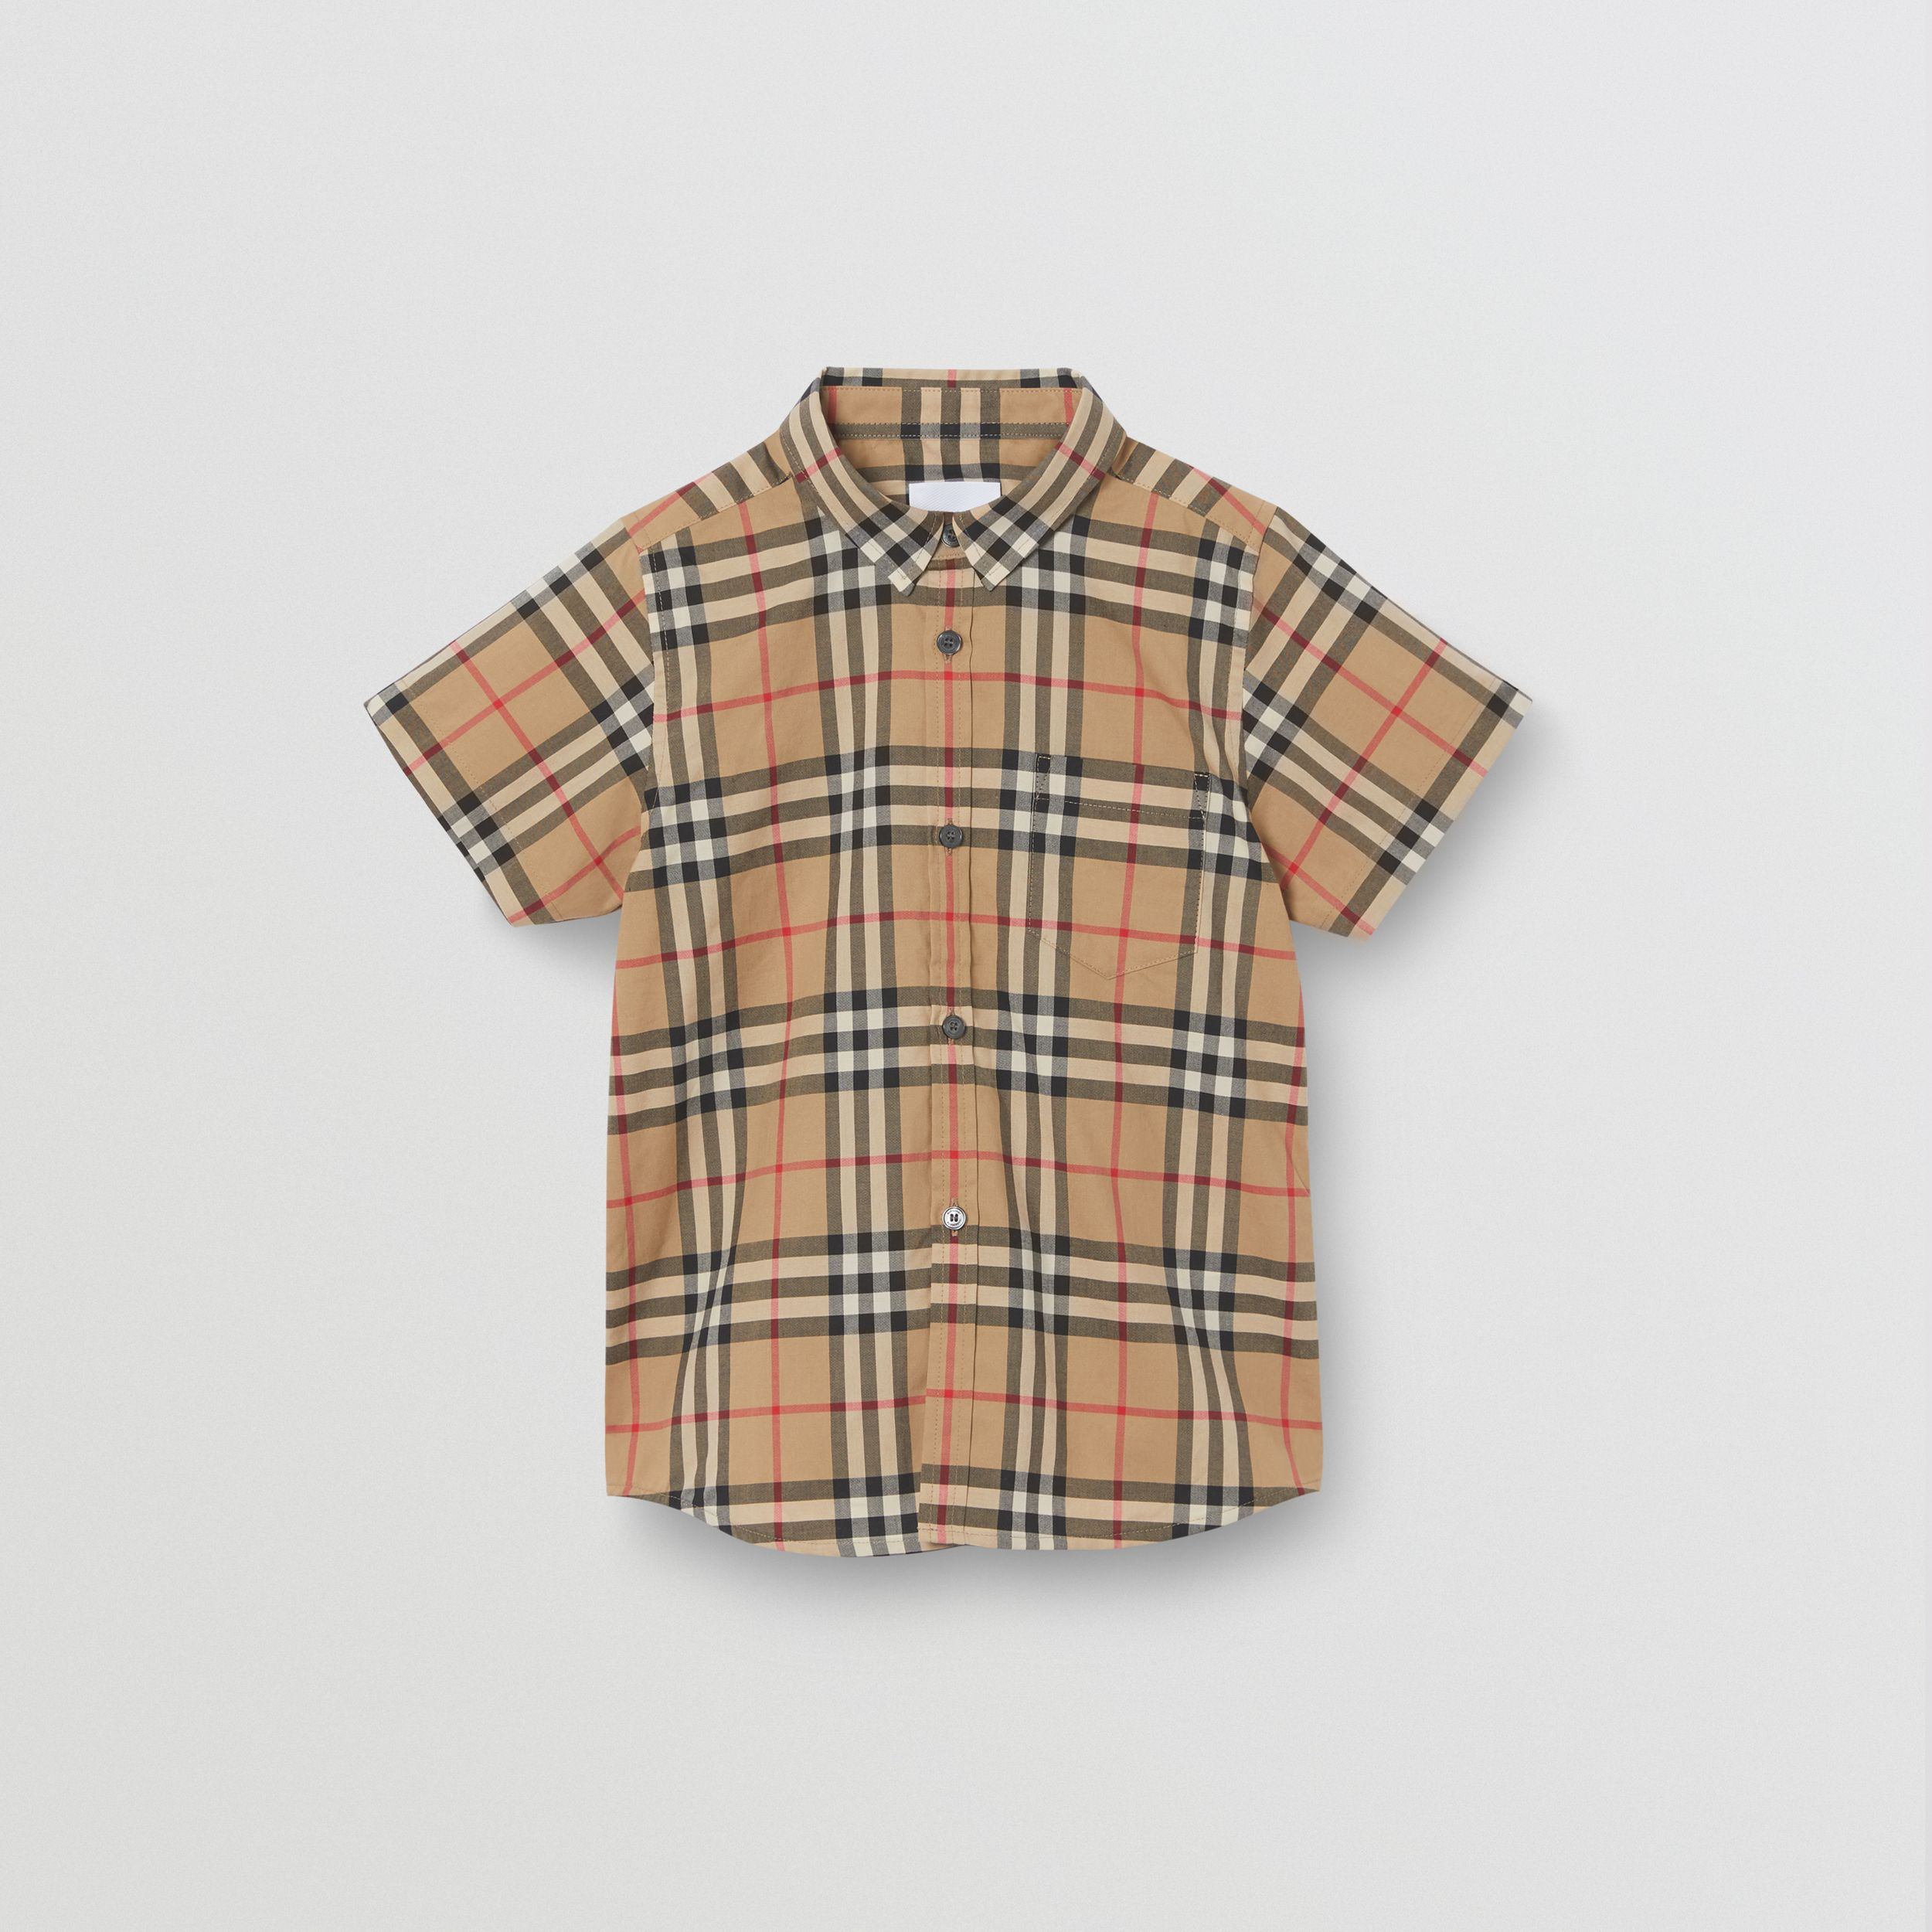 Short-sleeve Vintage Check Cotton Shirt in Archive Beige | Burberry Hong Kong S.A.R. - 1